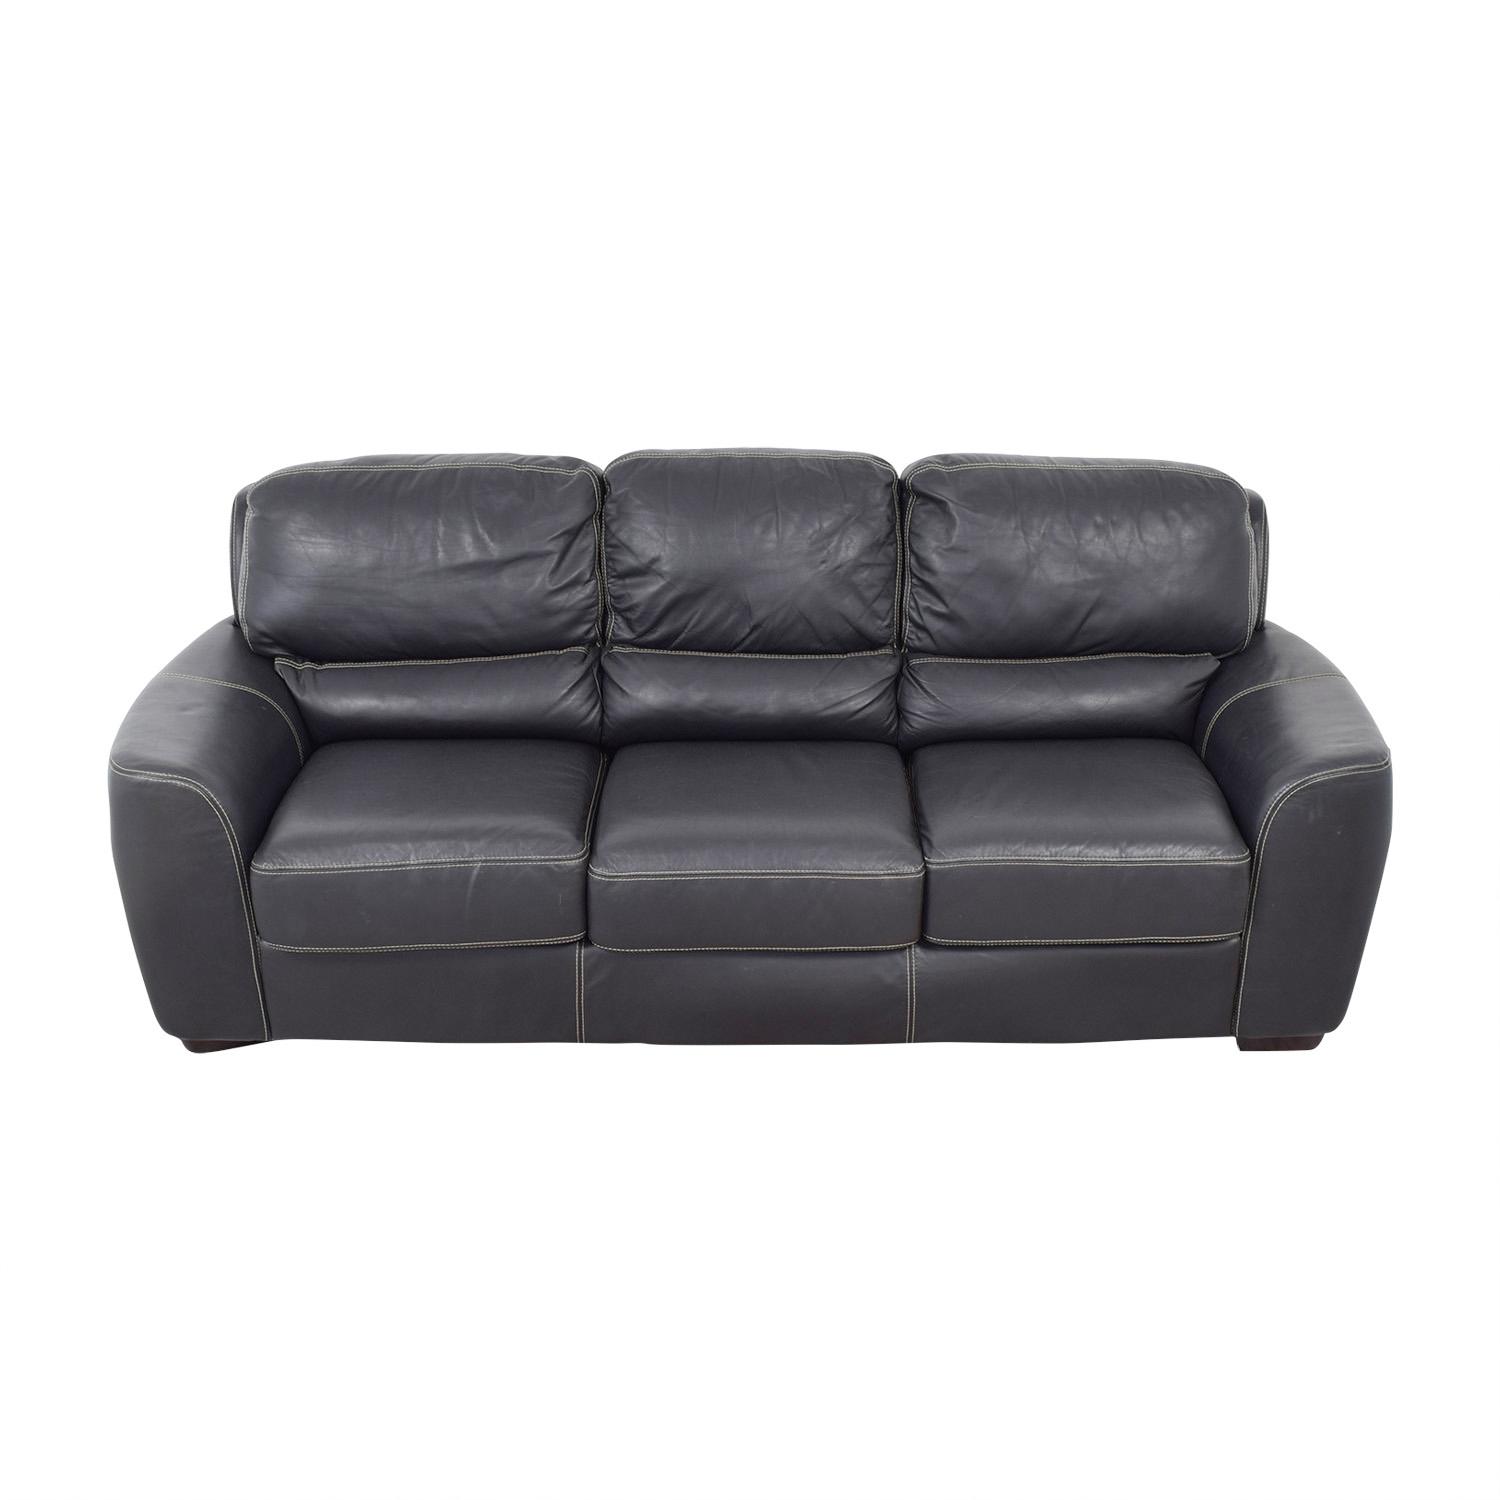 z gallerie bleeker sofa reviews leather clean gallery parker best ers collections